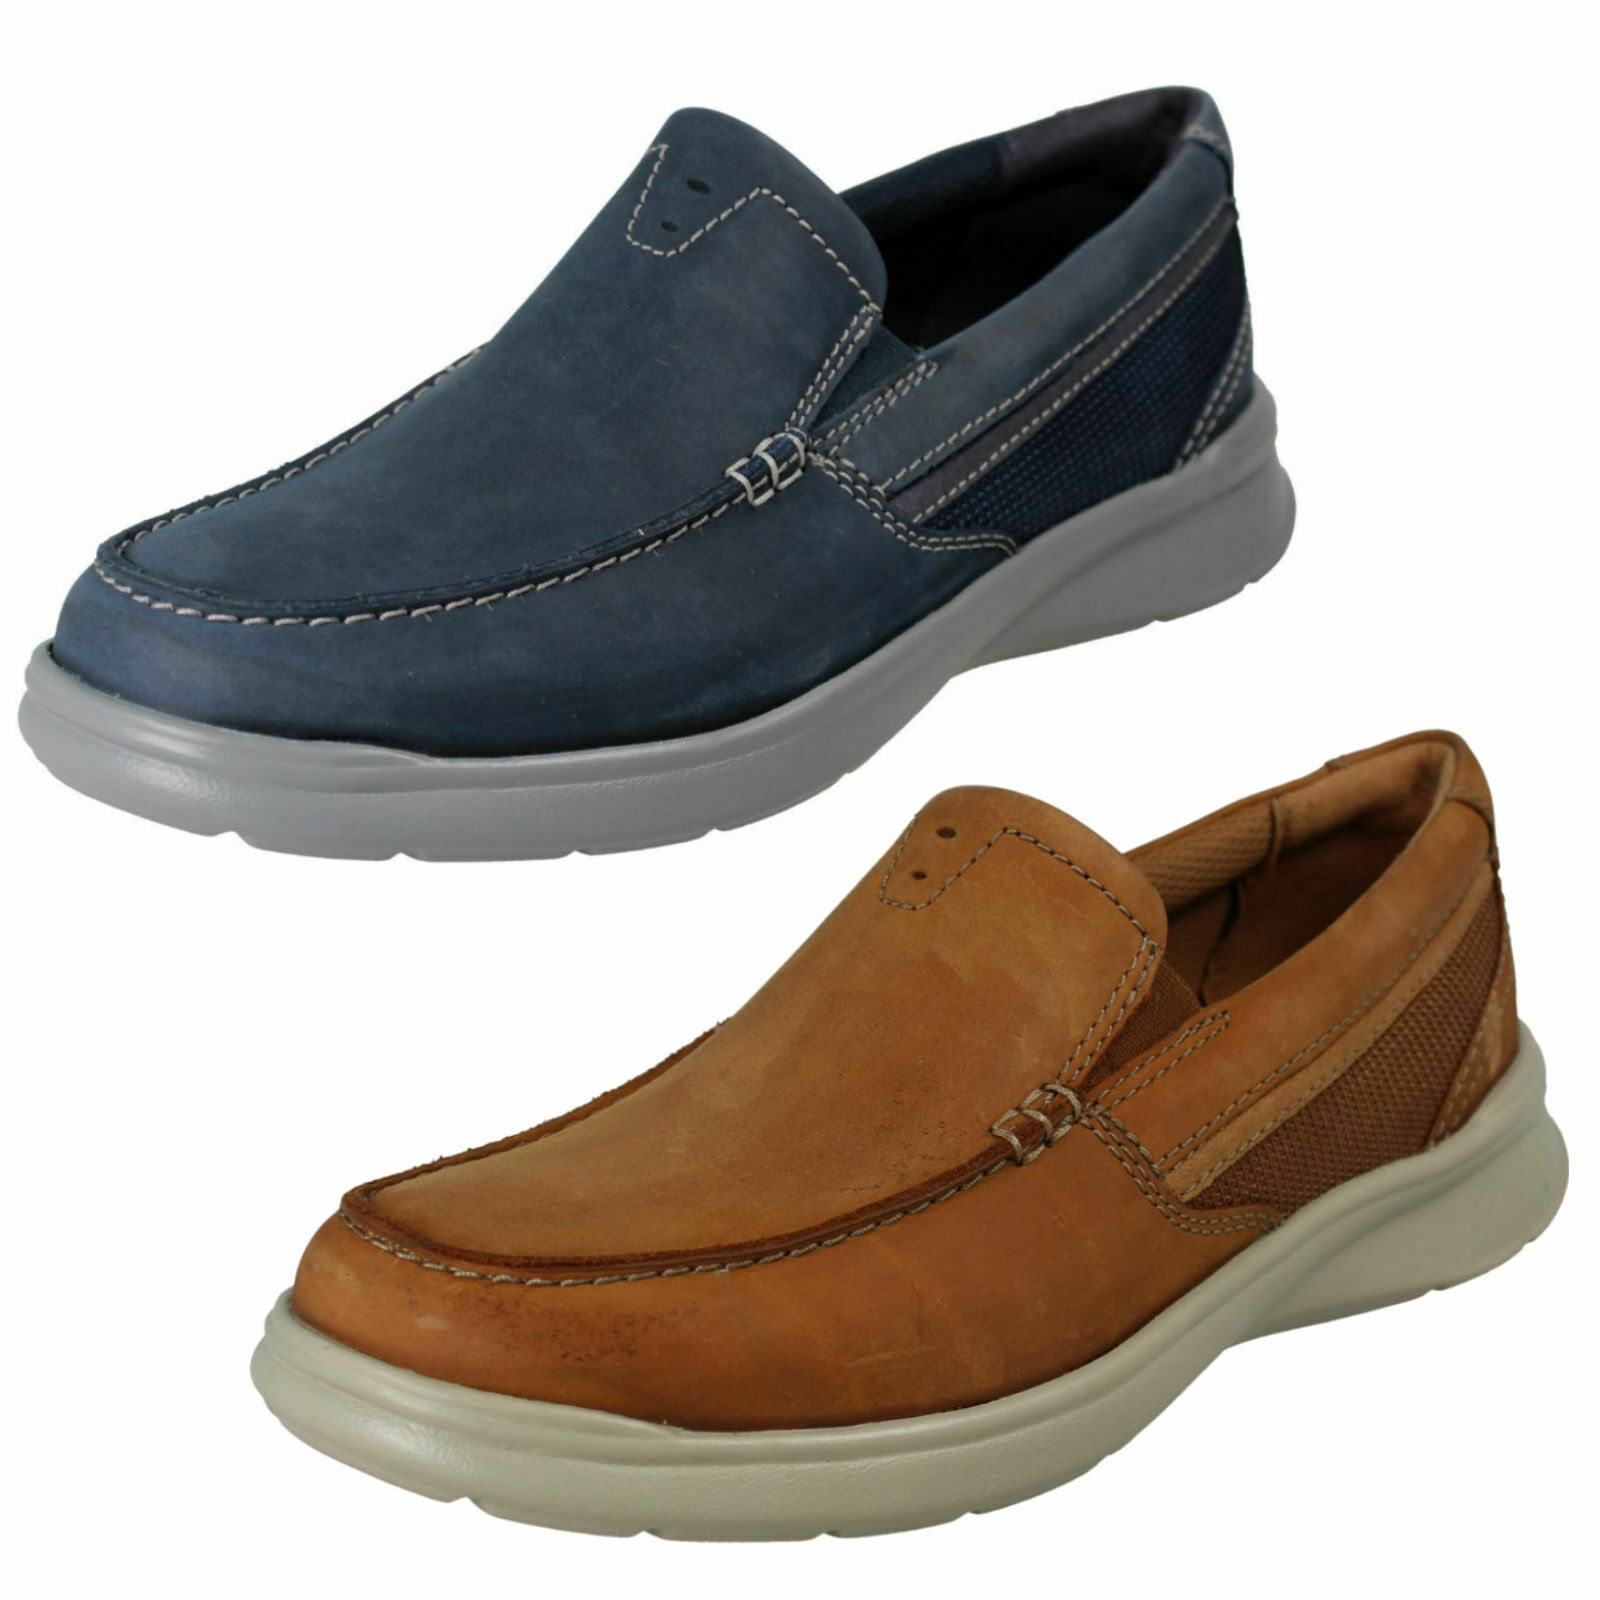 MENS CLARKS COTRELL EASY LEATHER EVERYDAY LIGHTWEIGHT SLIP ON CASUAL schuhe Größe